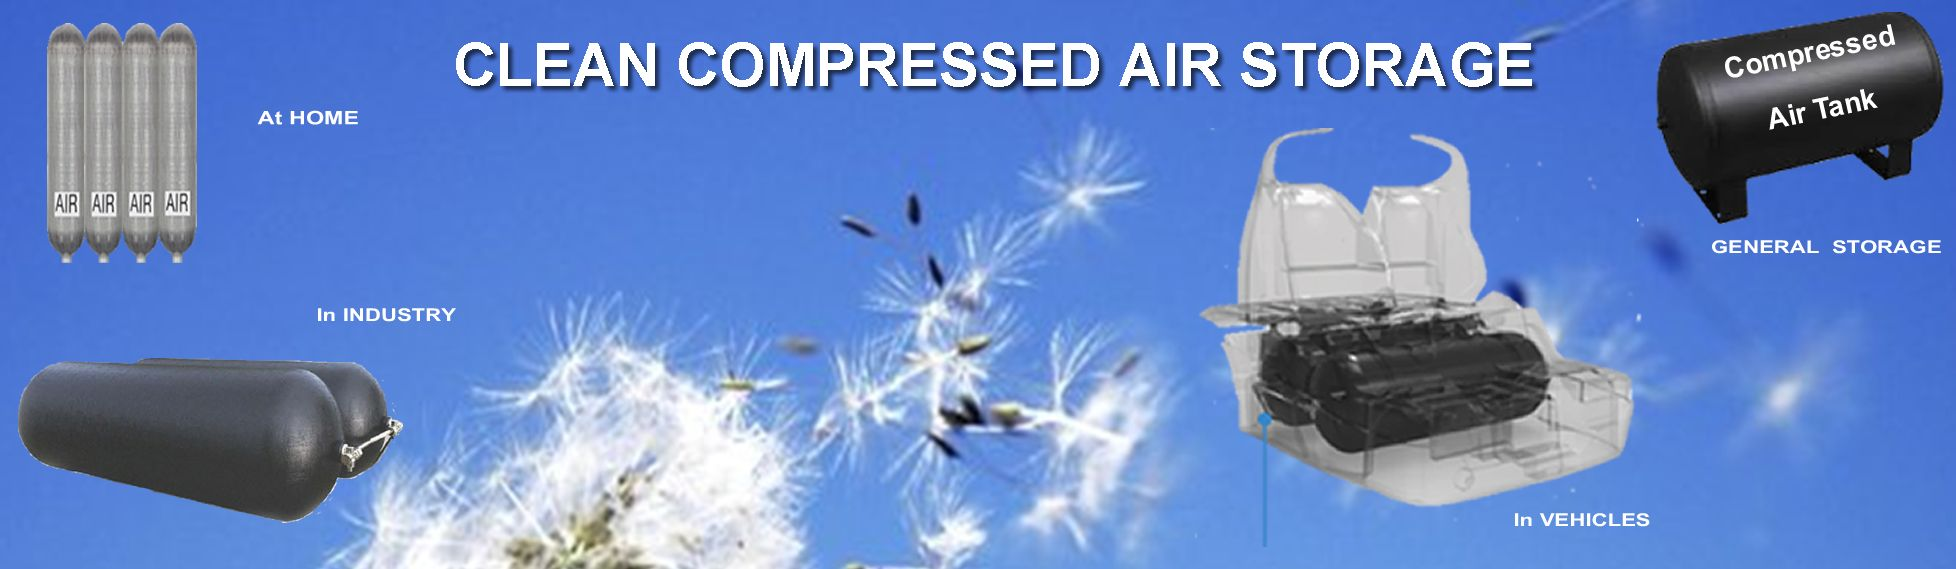 Clean Compressed Air Stoarage